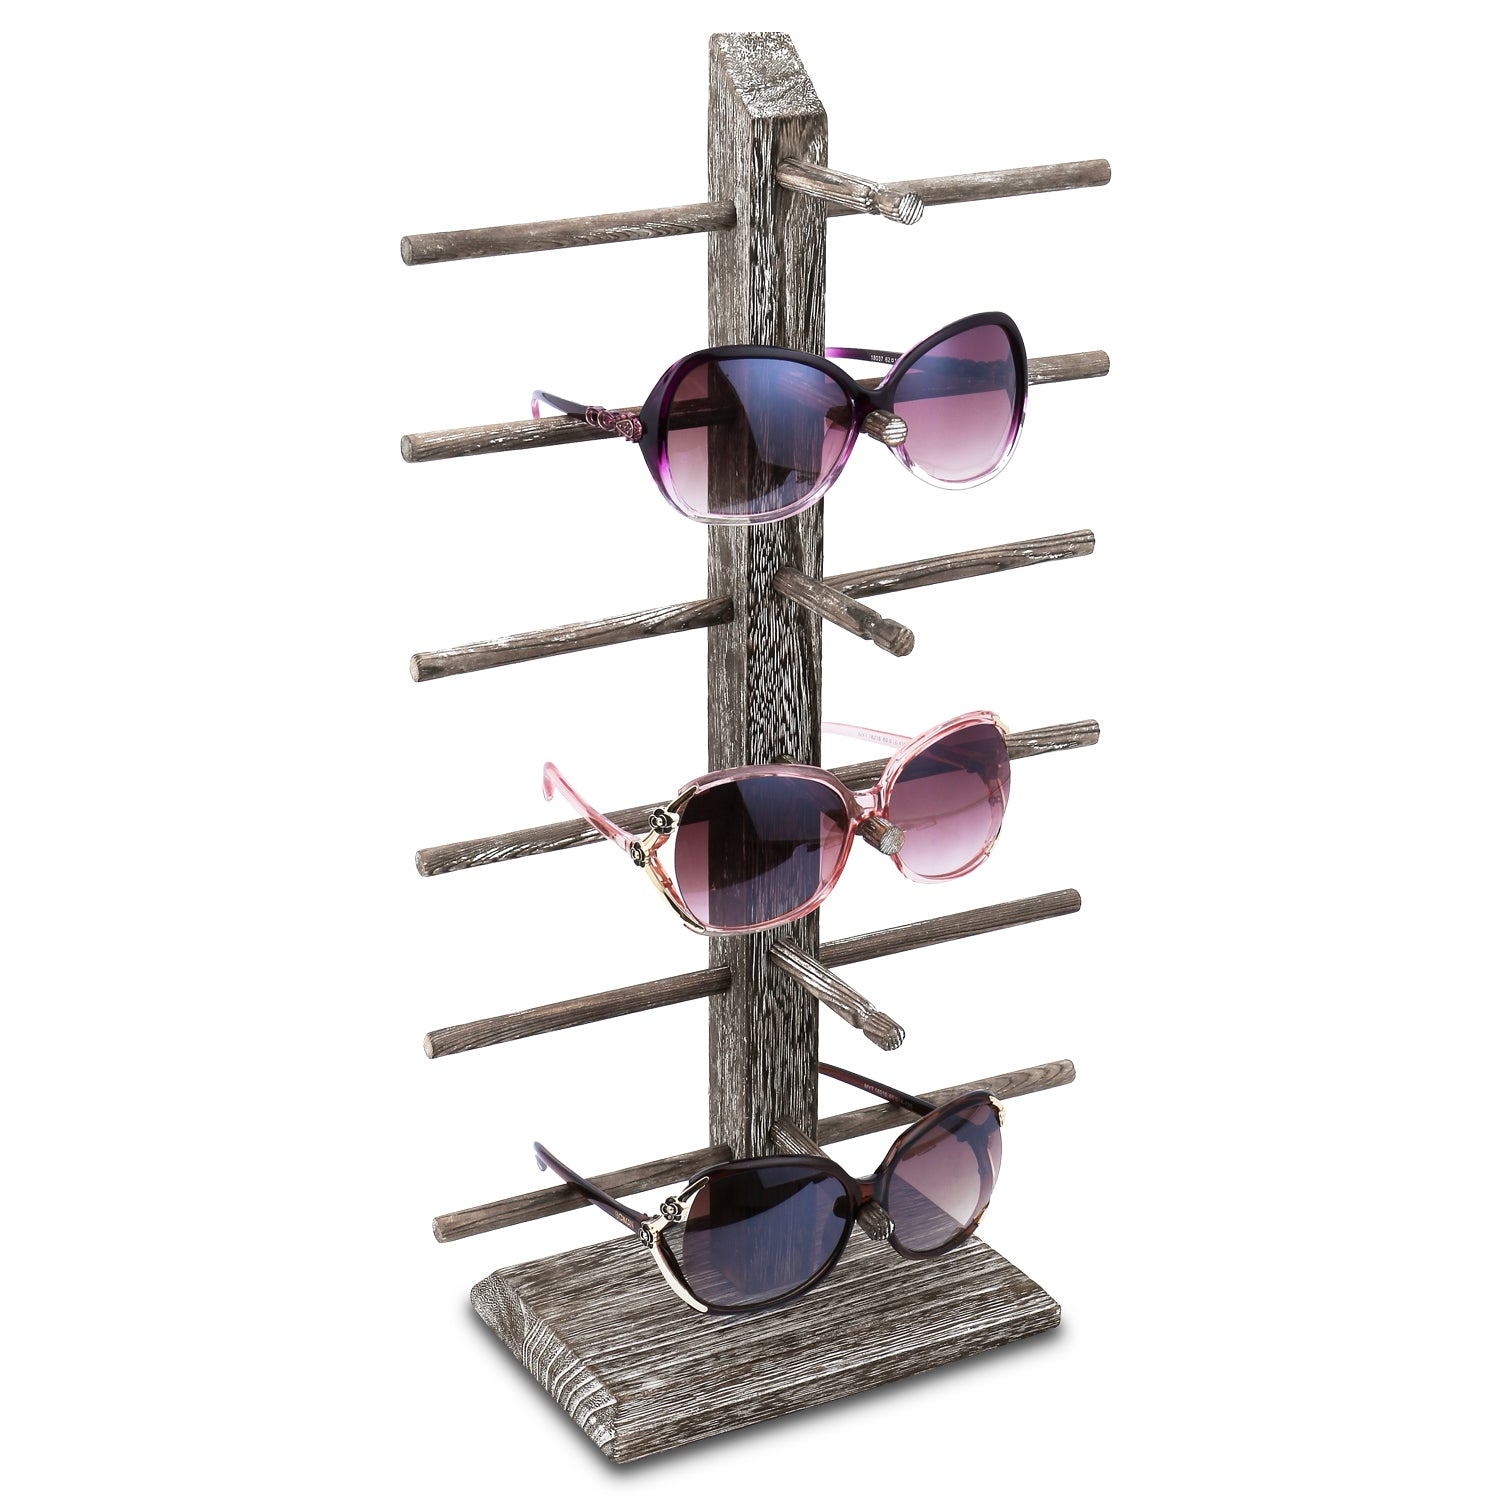 #WD-06CF Wooden Eyeglass Rack for Showcasing 6 Pairs of Glasses